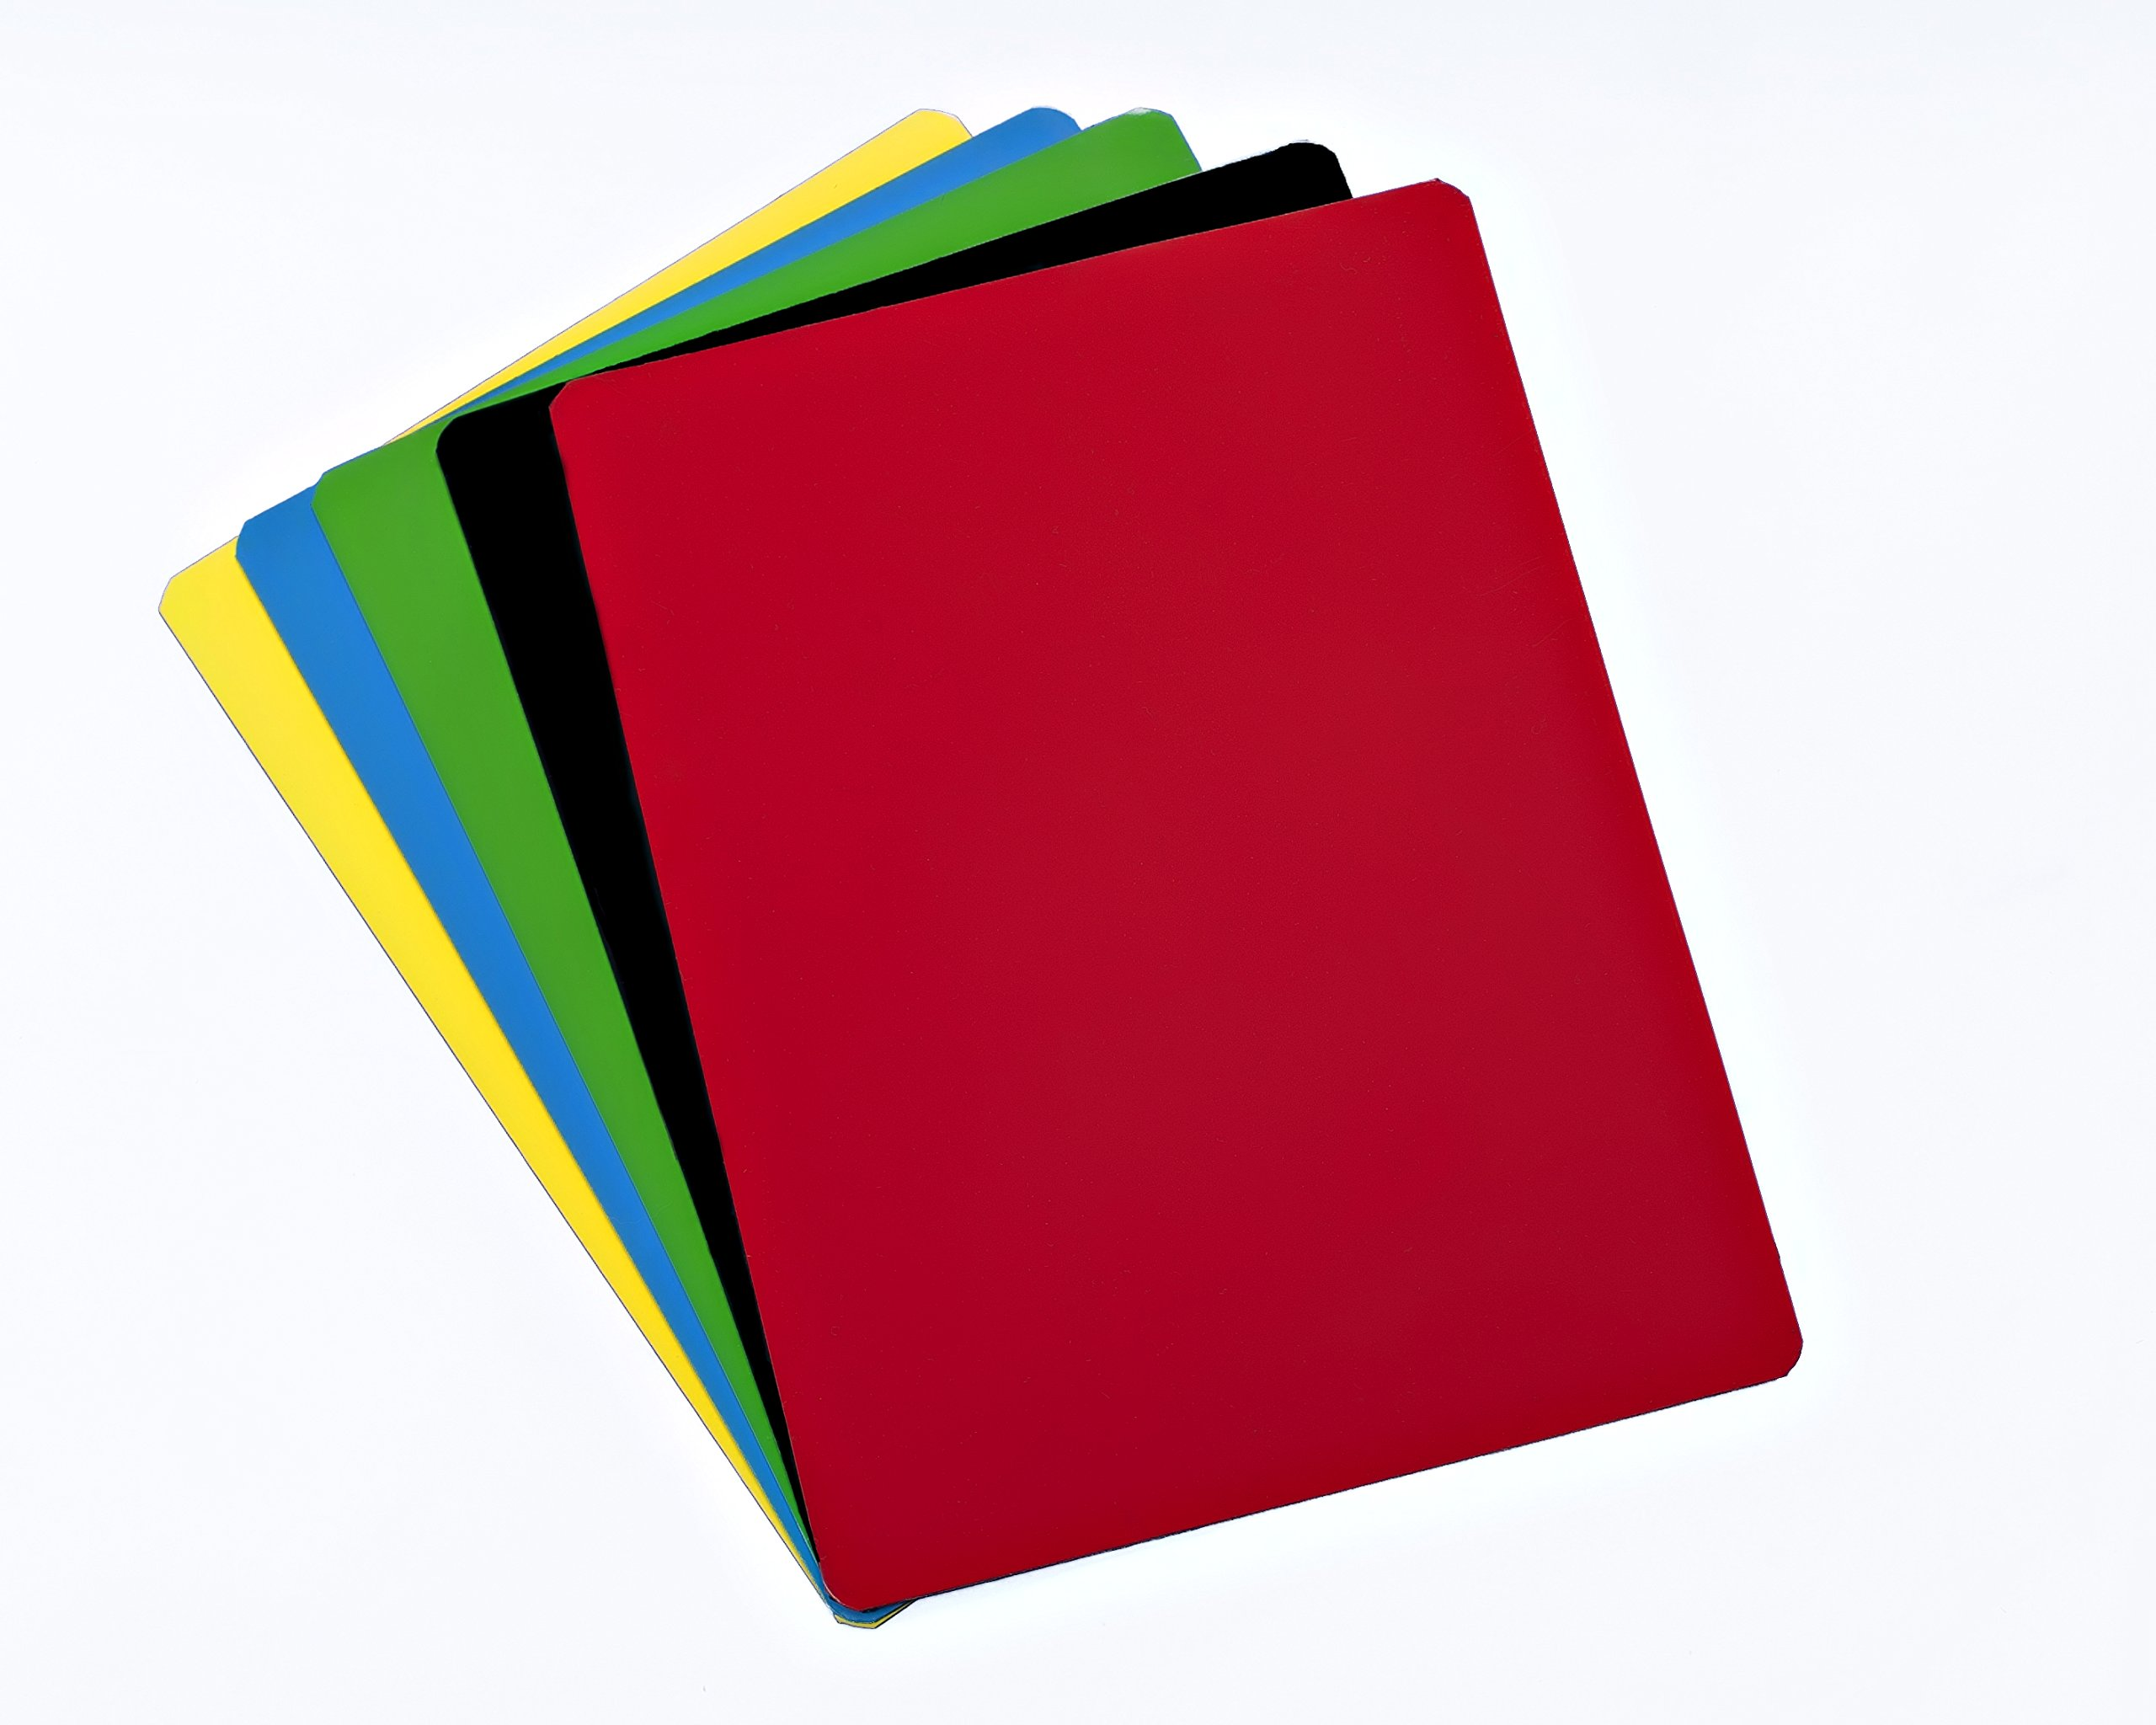 Dry Erase Magnetic Sheet - 12'' X 18'' - 5 Sheets - Multiple Colors by Discount Magnets (Image #1)